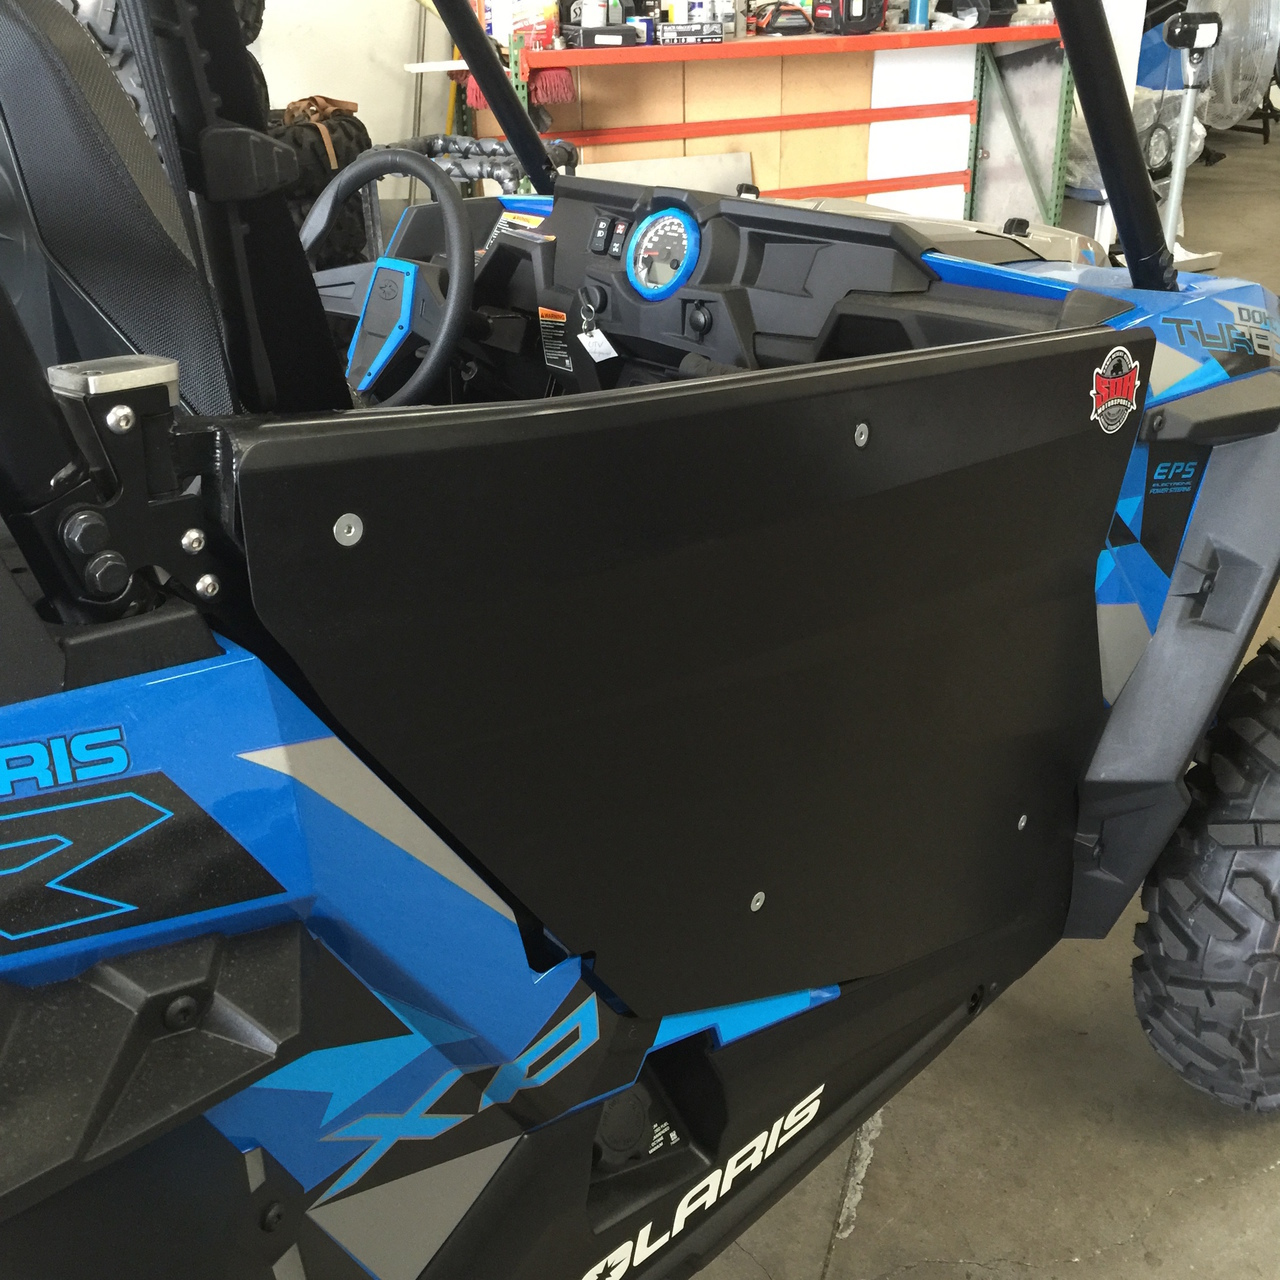 Sdr Motorsports Polaris Rzr Xp1000 Turbo Xpr 2 Bolt On